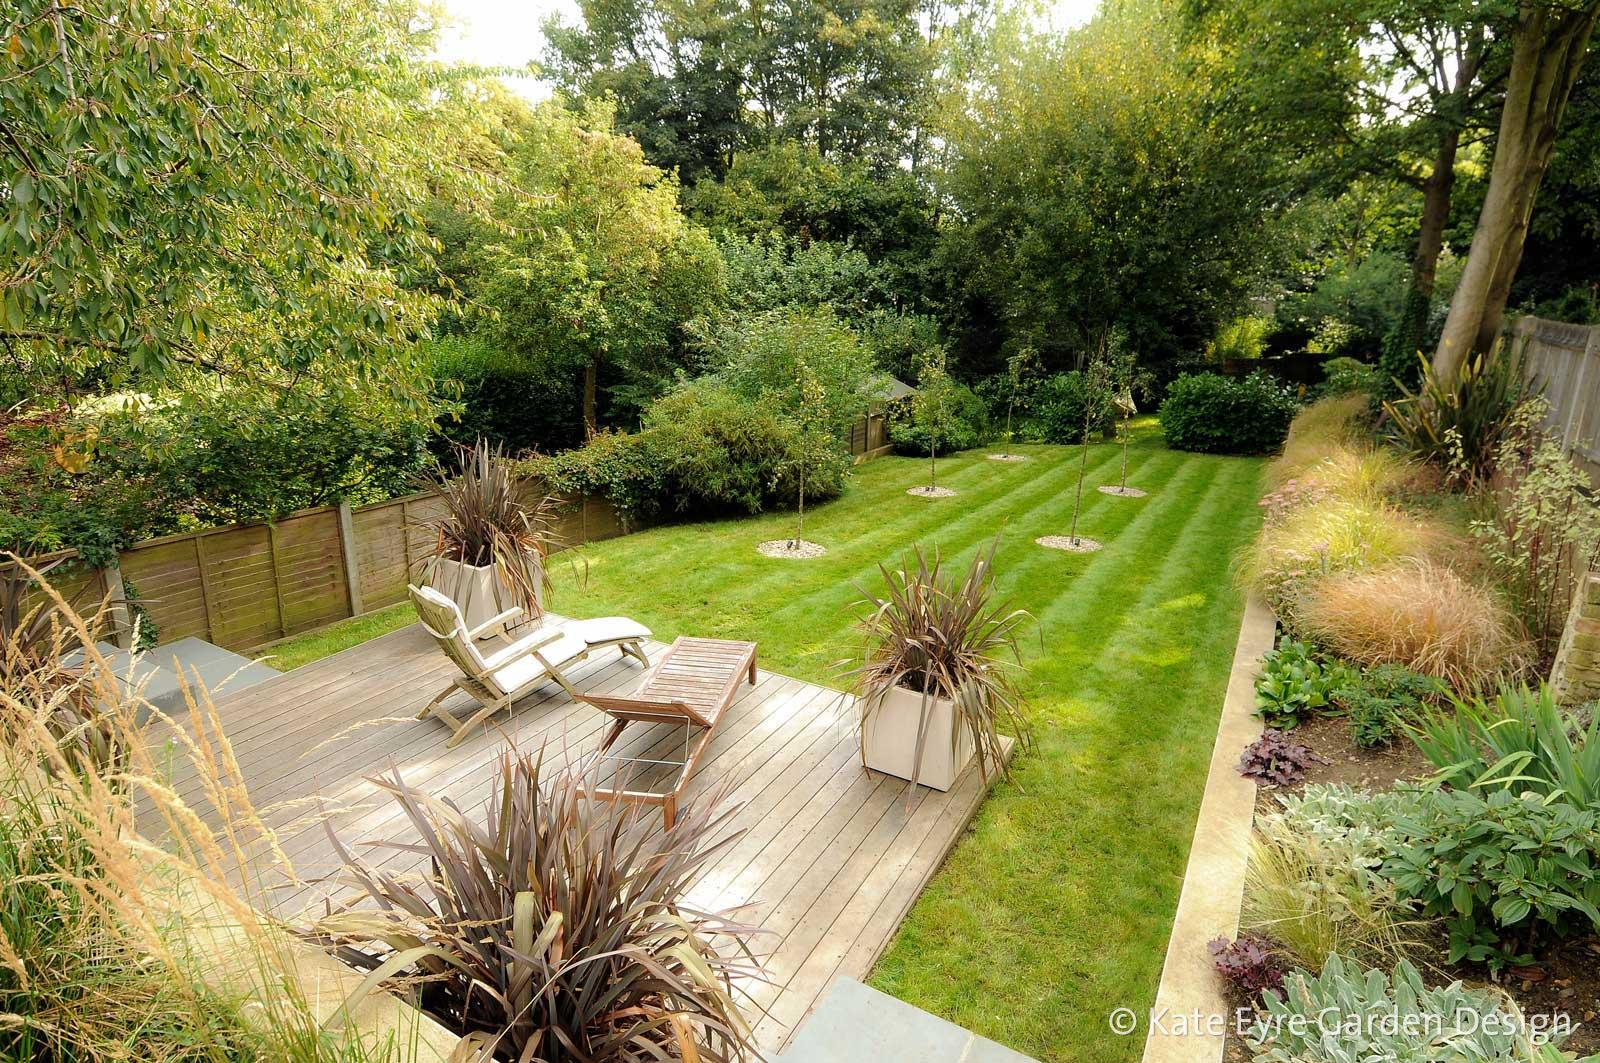 Garden design in crystal palace south east london for Landscape design london